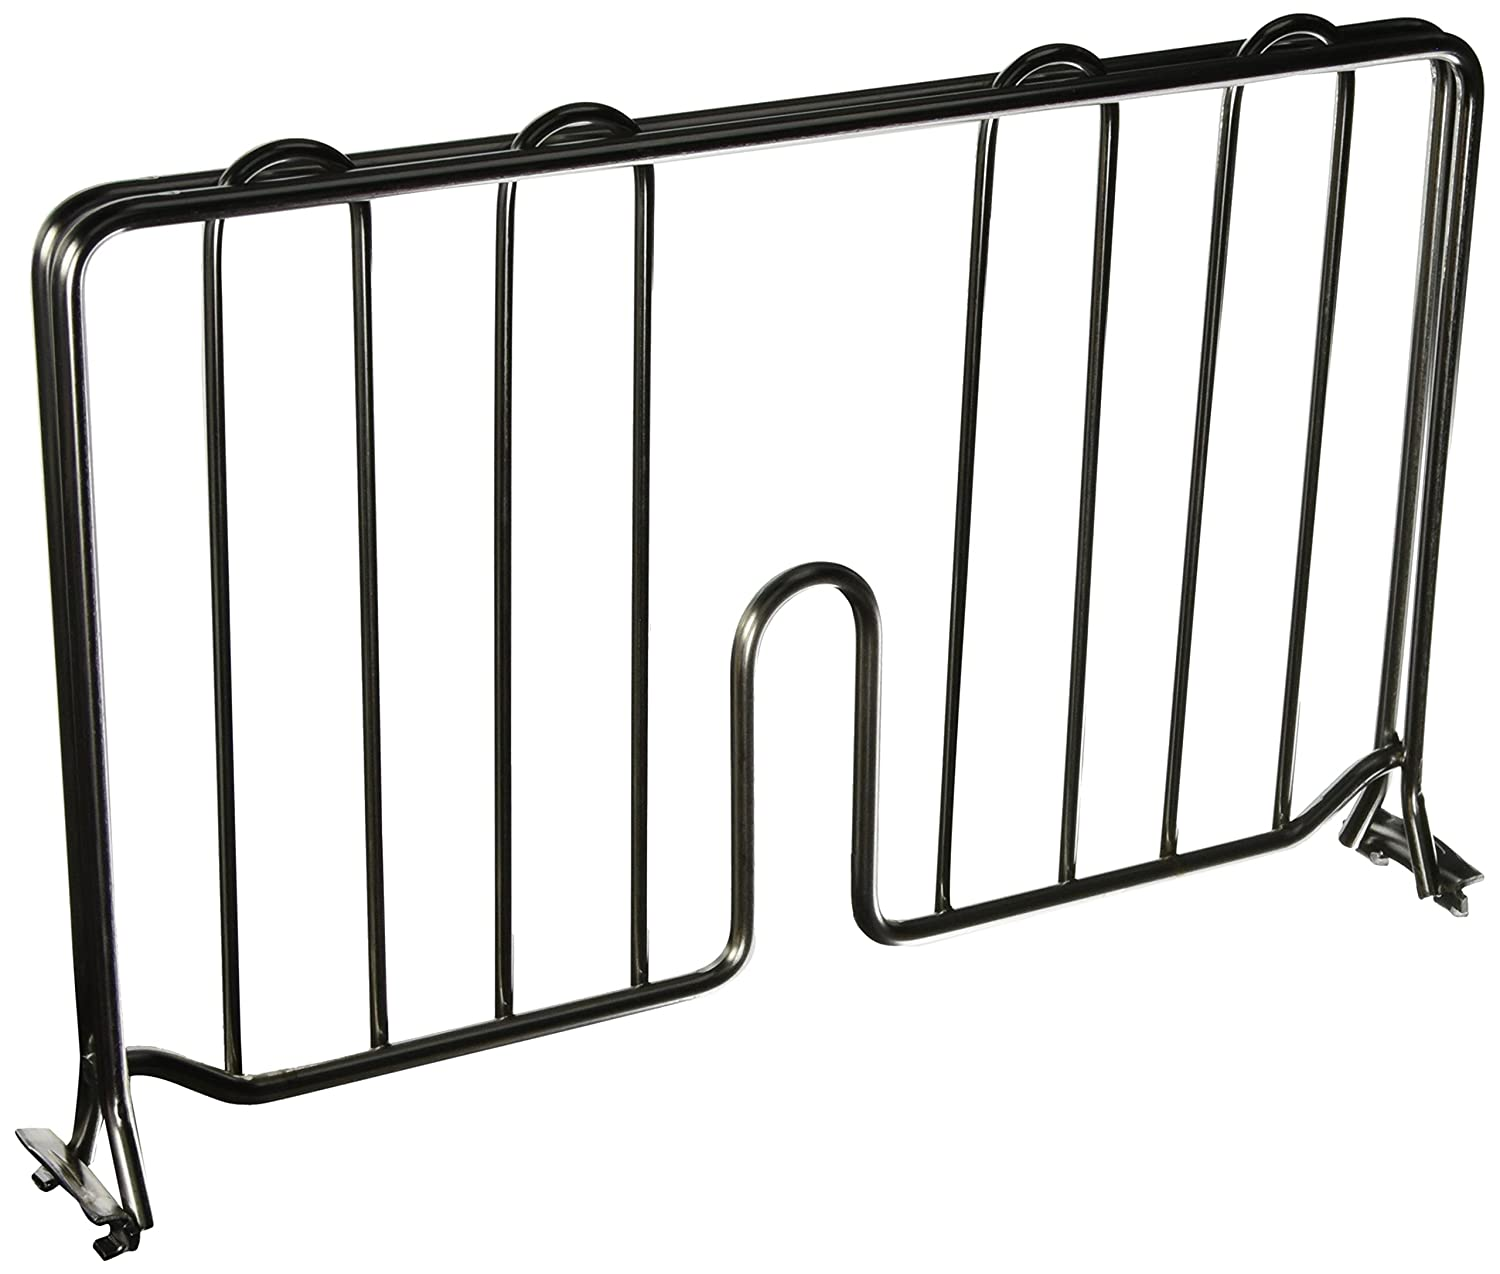 Metro DD14C Super Erecta Chrome Plated Shelf Divider, 14 Width x 8 Height InterMetro Industries